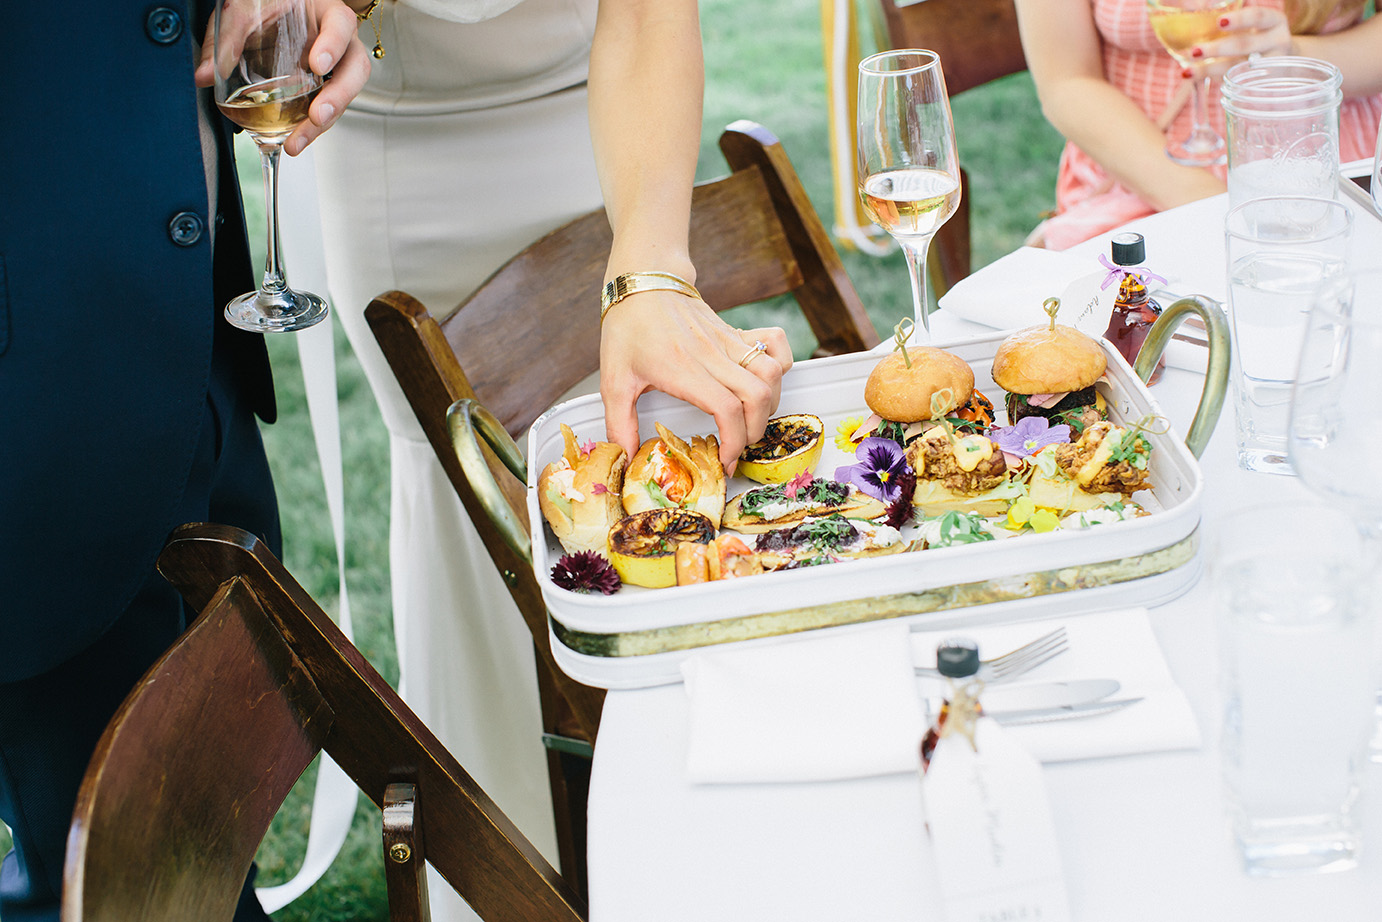 Maine Wedding Catering Company Serving Wood-Fired Appetizers